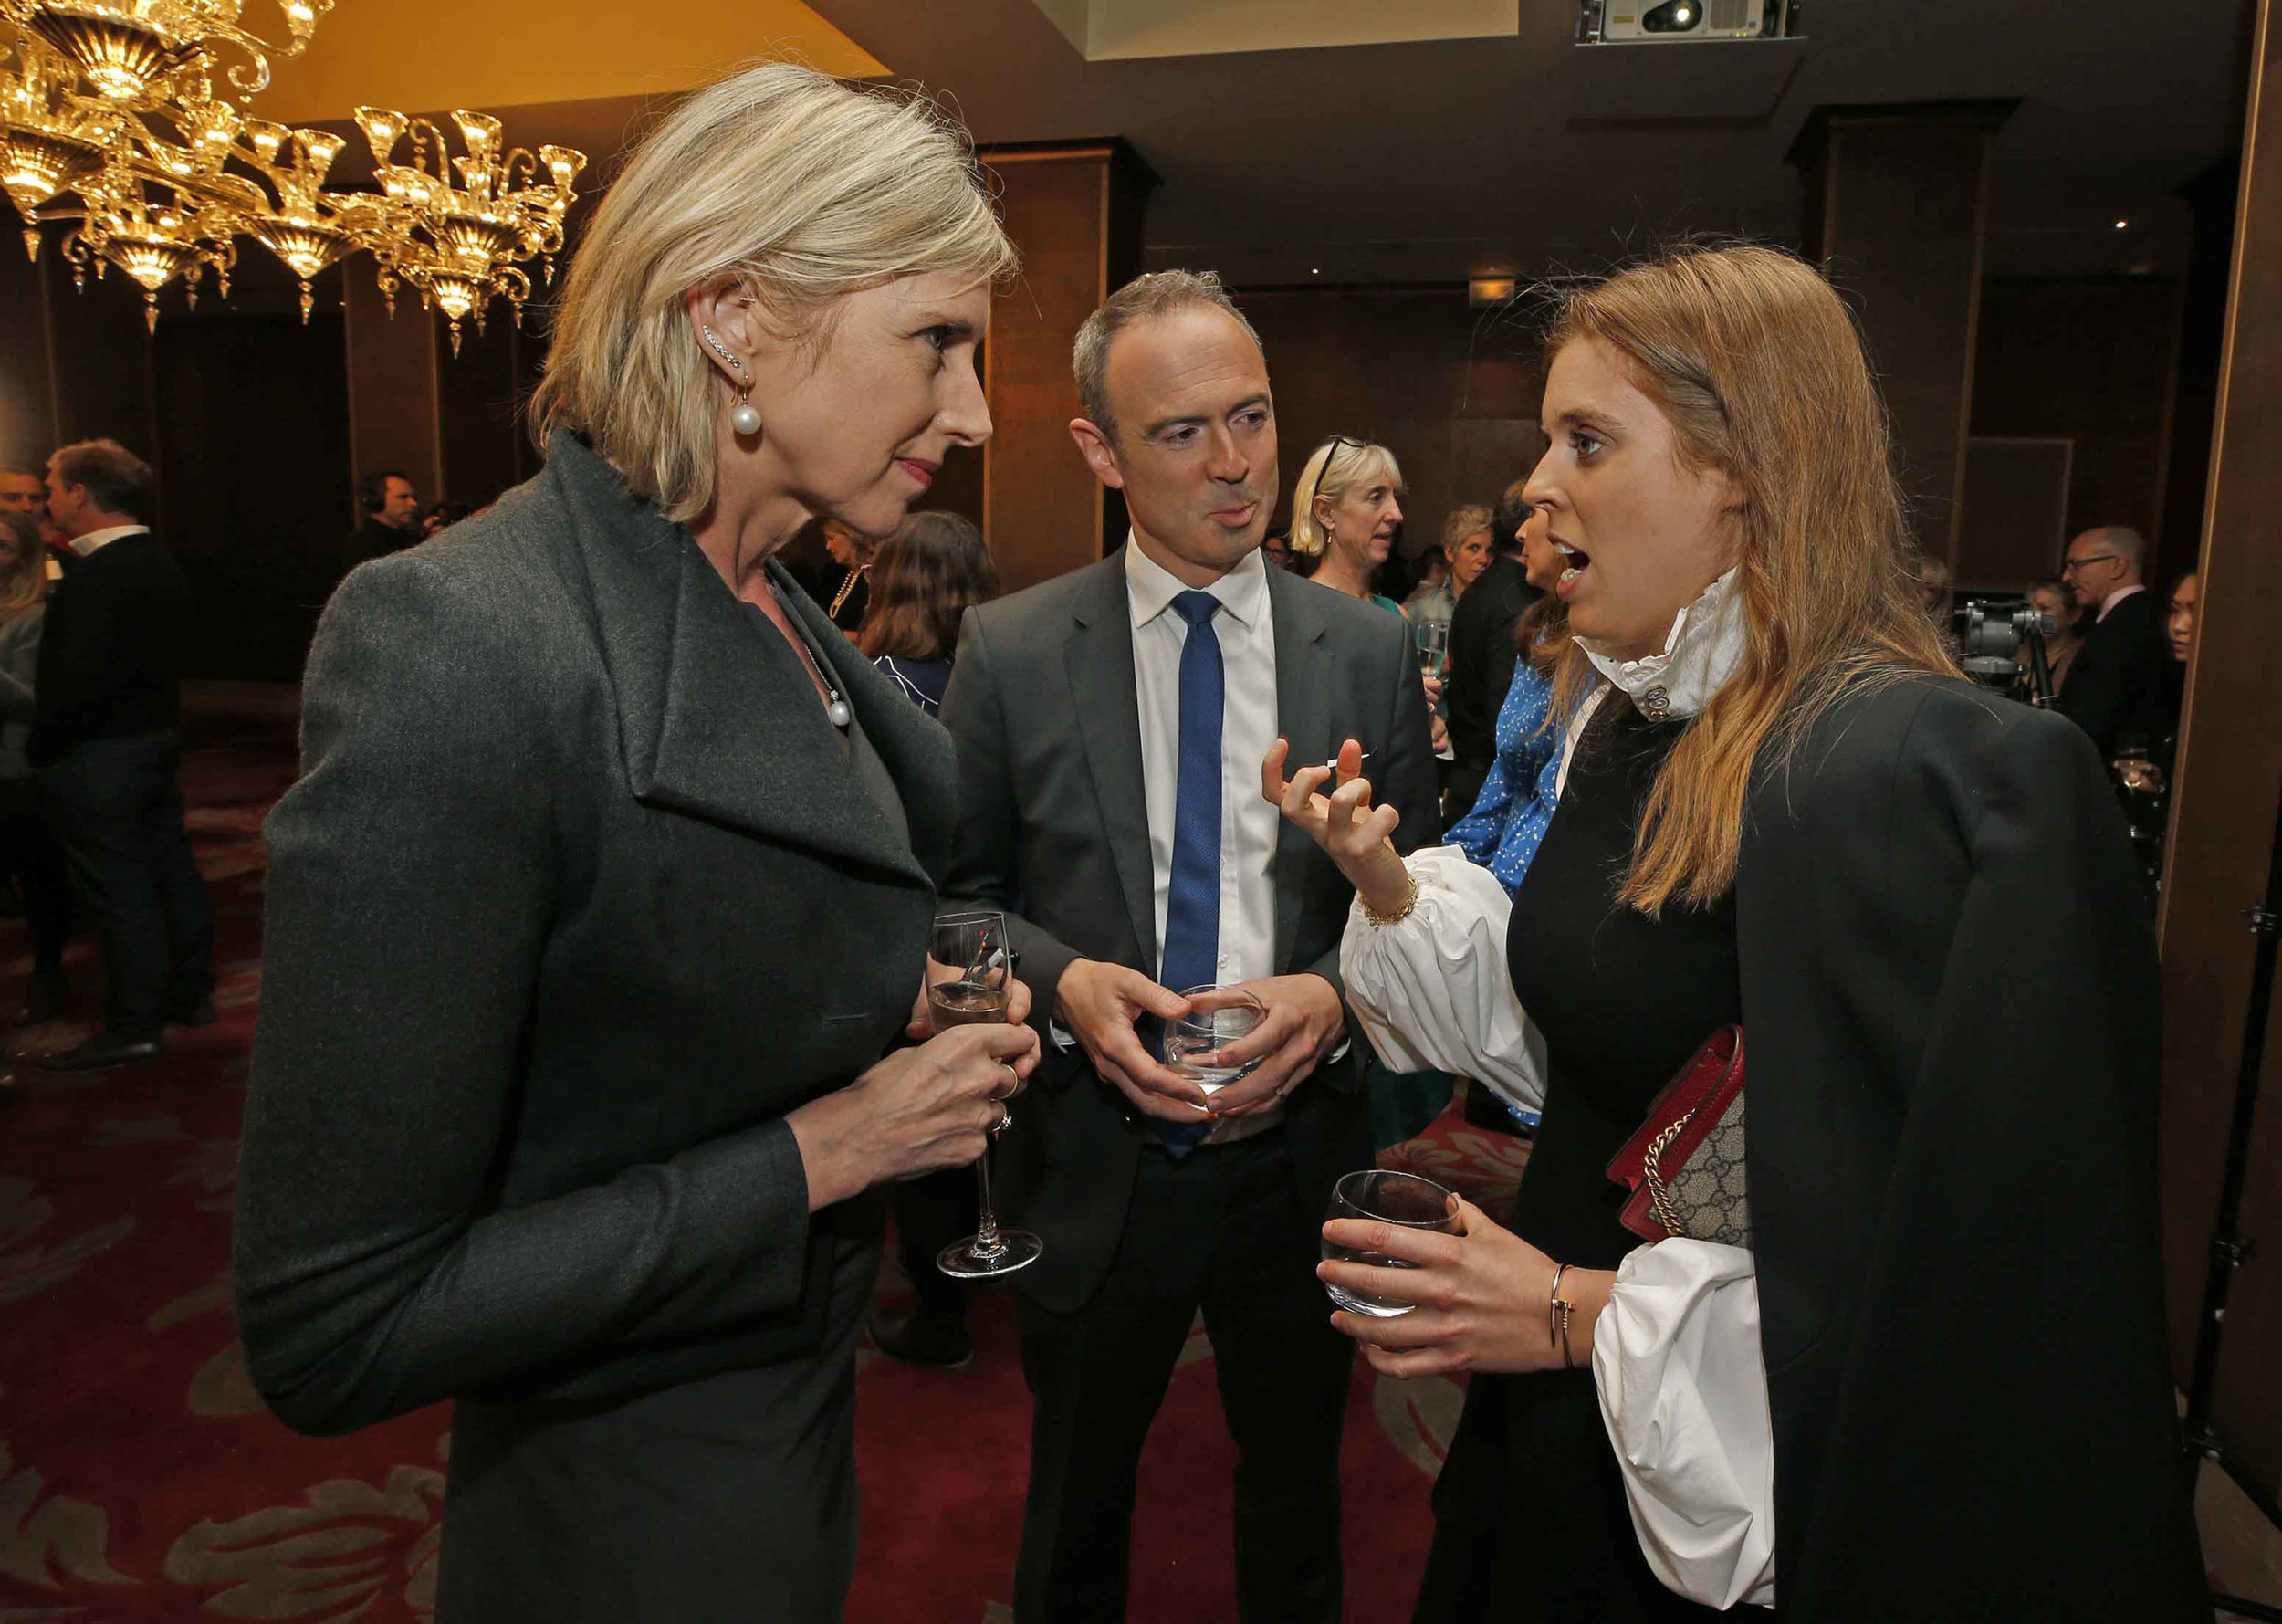 Children's Laureate and 2019 Oscar's Book Prize judge Lauren Child; James Ashton, Founder of Oscar's Book Prize, and HRH Princess Beatrice. Photography: Nigel Howard Media.